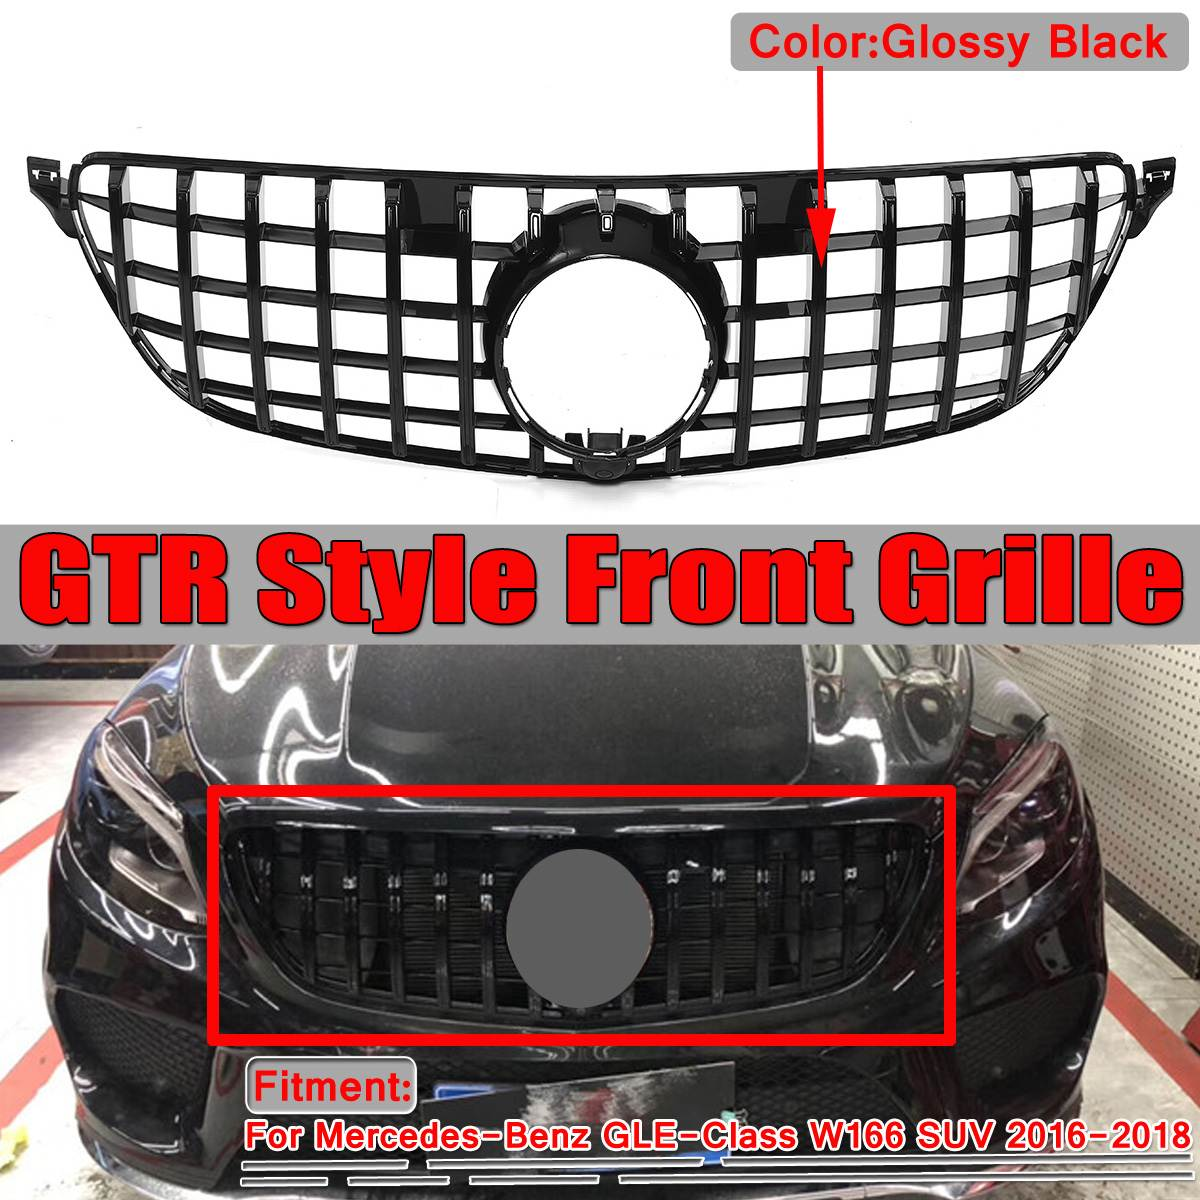 Black / Chrome GTR GT R W166 Grill Car Front Grill Grille For Mercedes For Benz GLE-Class W166 SUV 2016 2017 2018 Racing Grills image